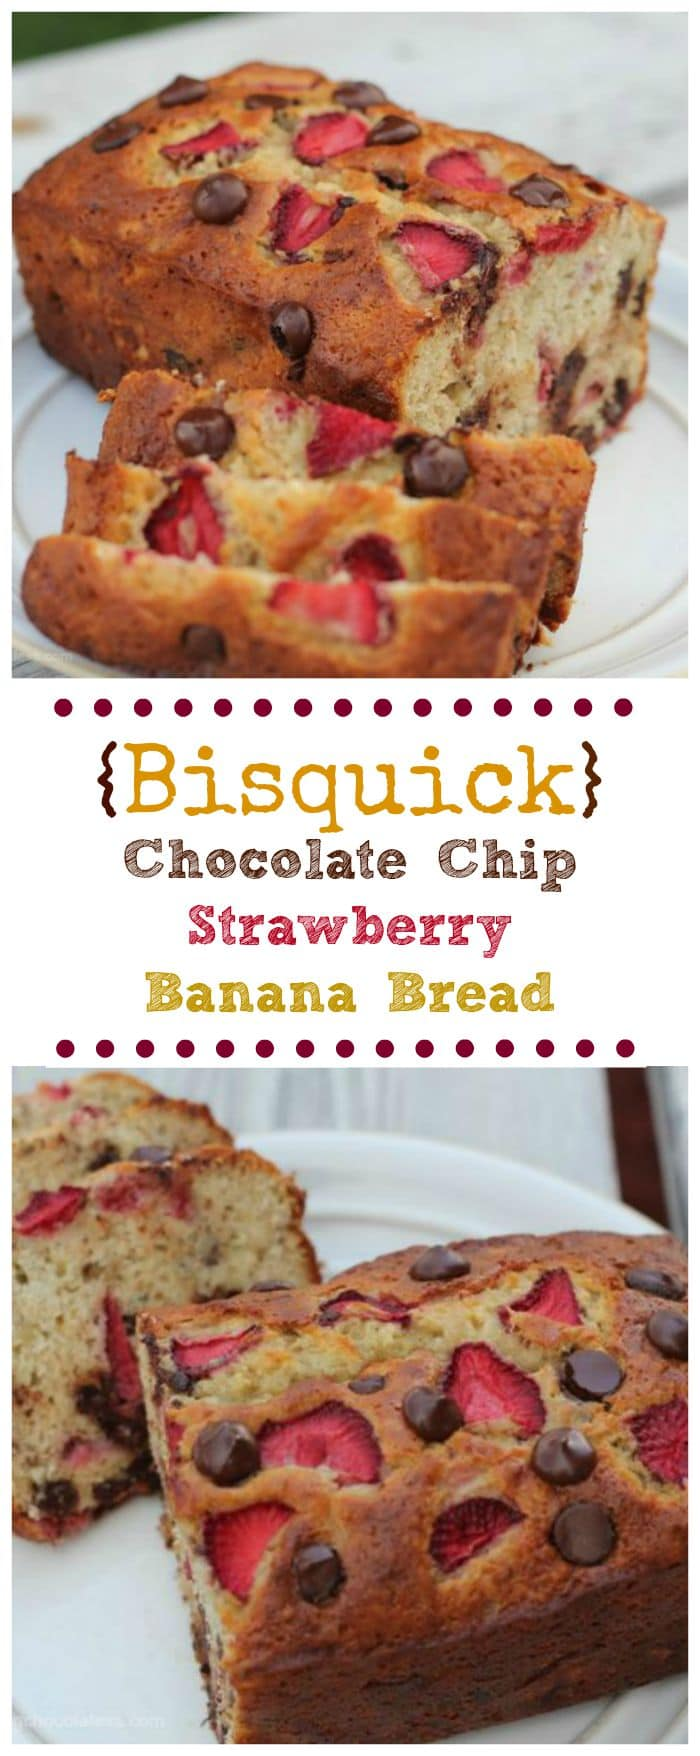 Bisquick} Chocolate Chip-Strawberry-Banana Bread – The Baking ...